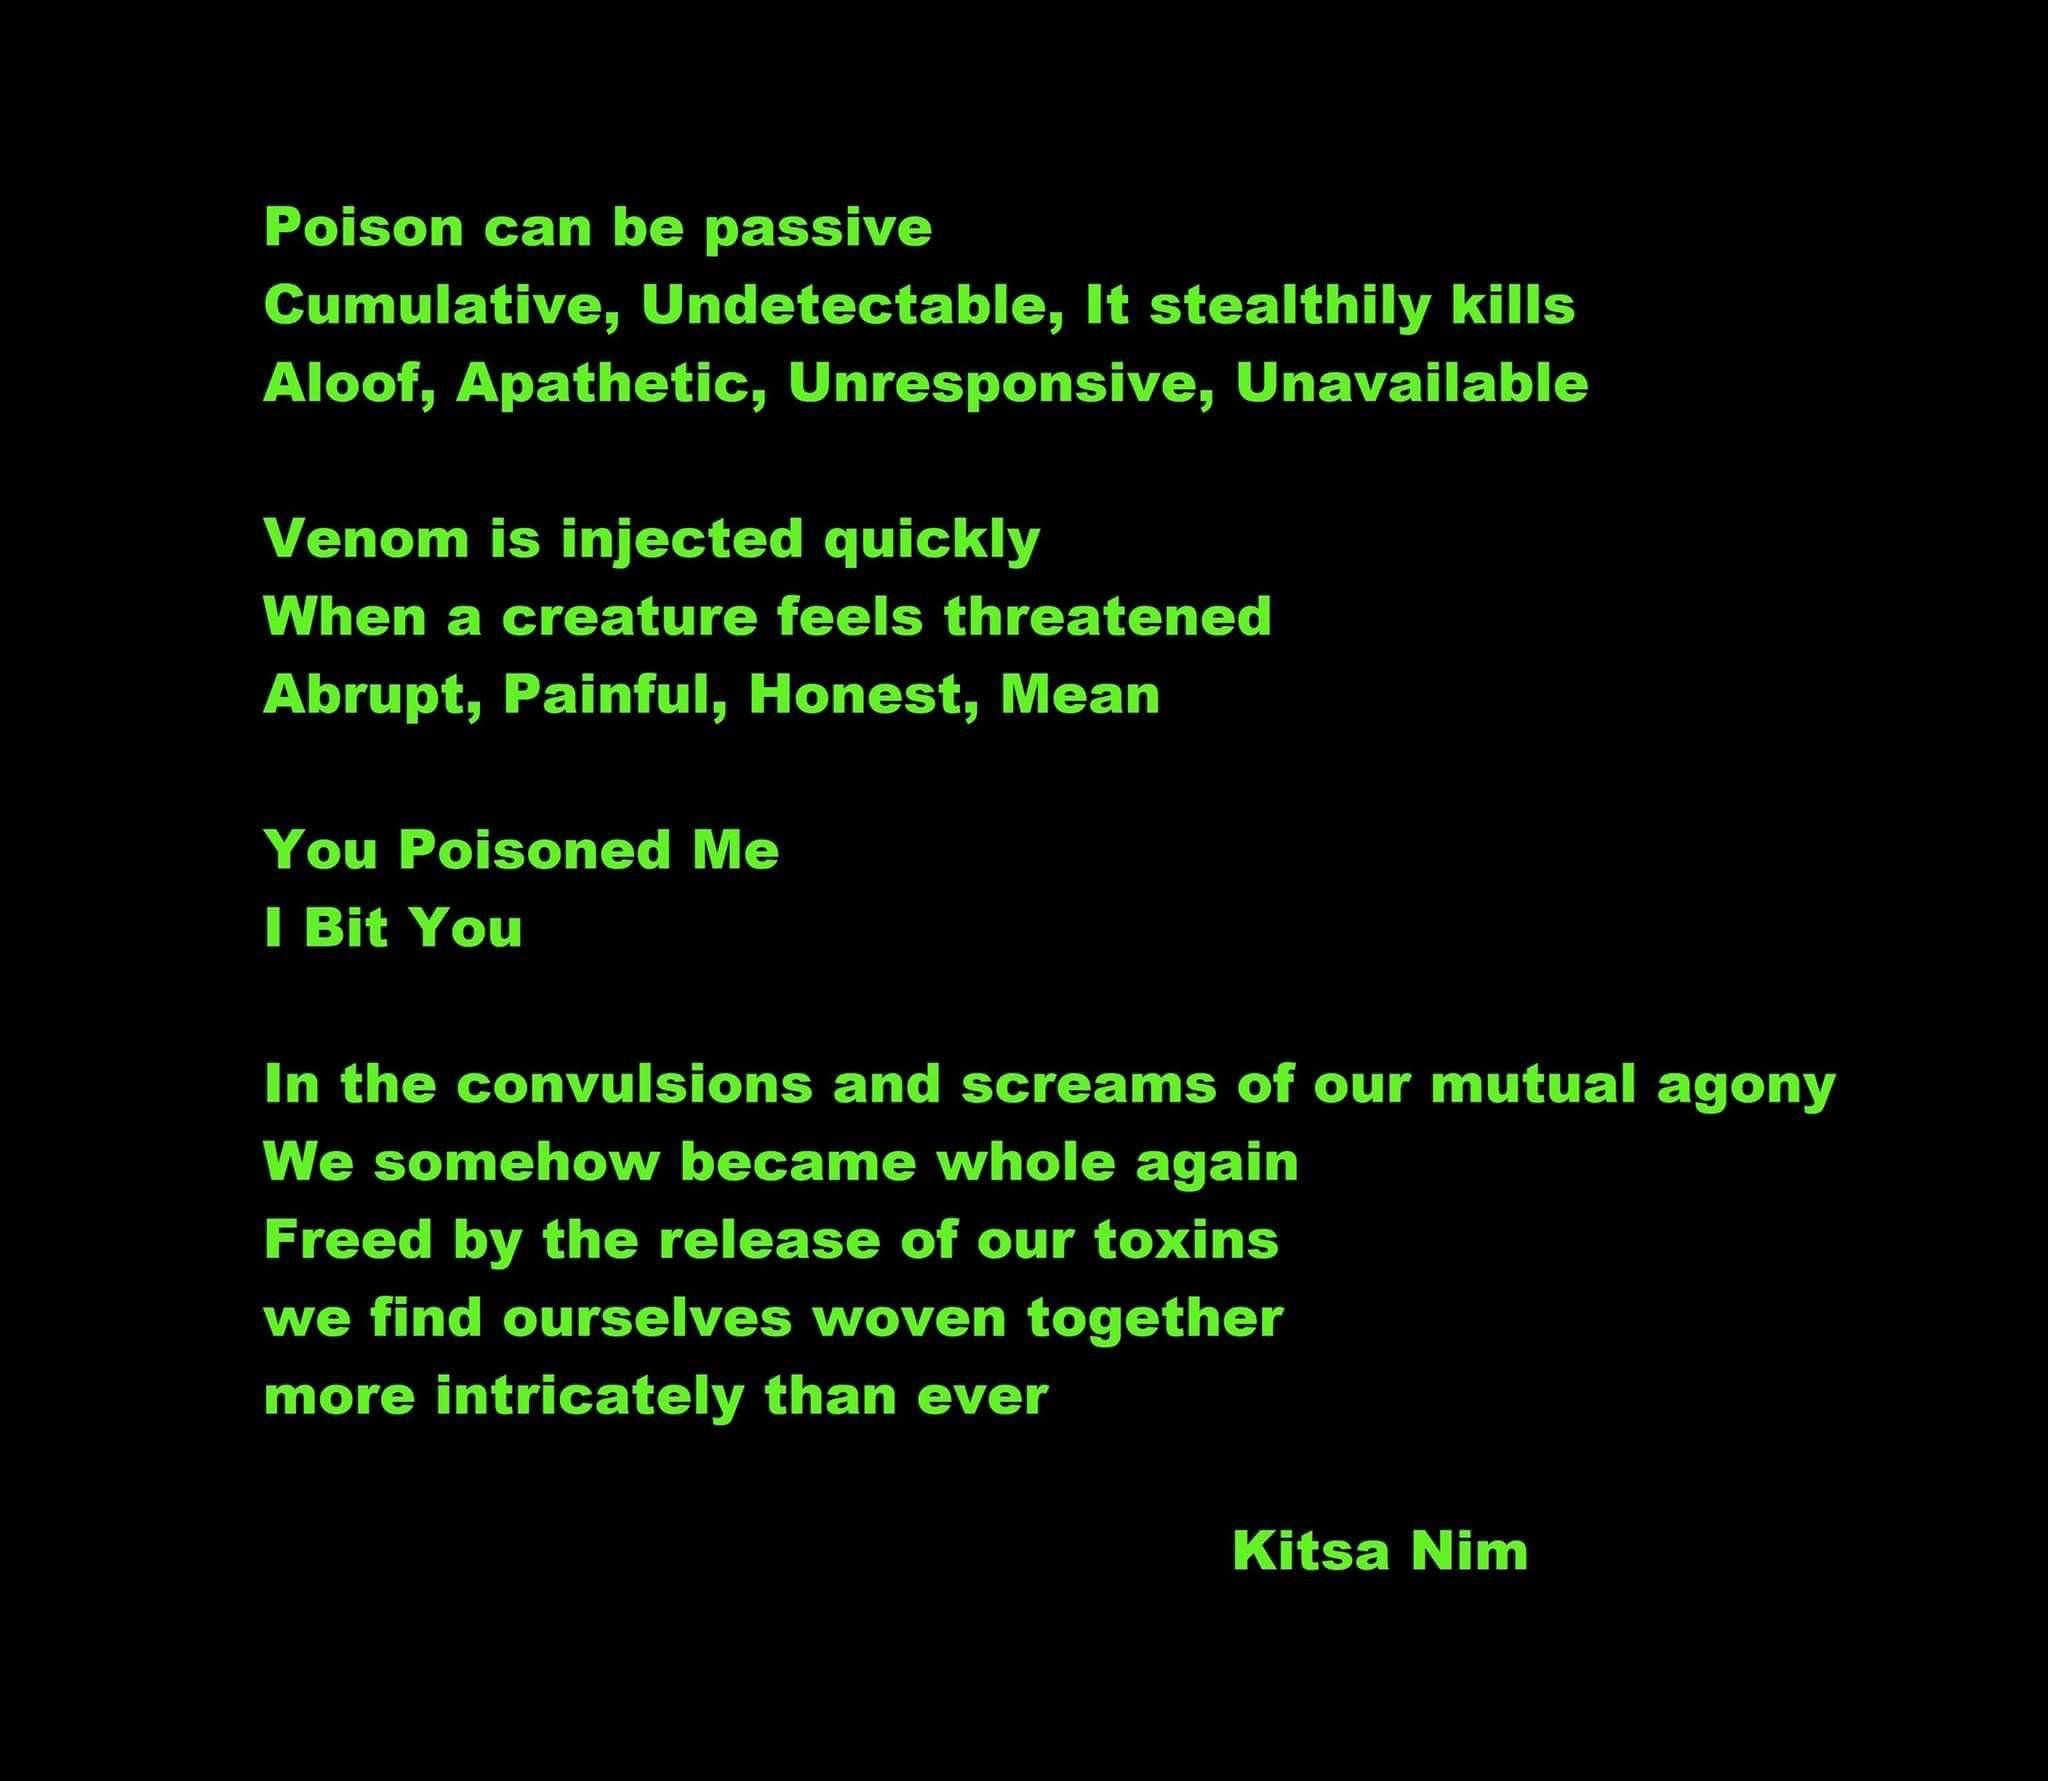 Poem By Kitsa Nim About Poison Venom Relationships Fighting Love